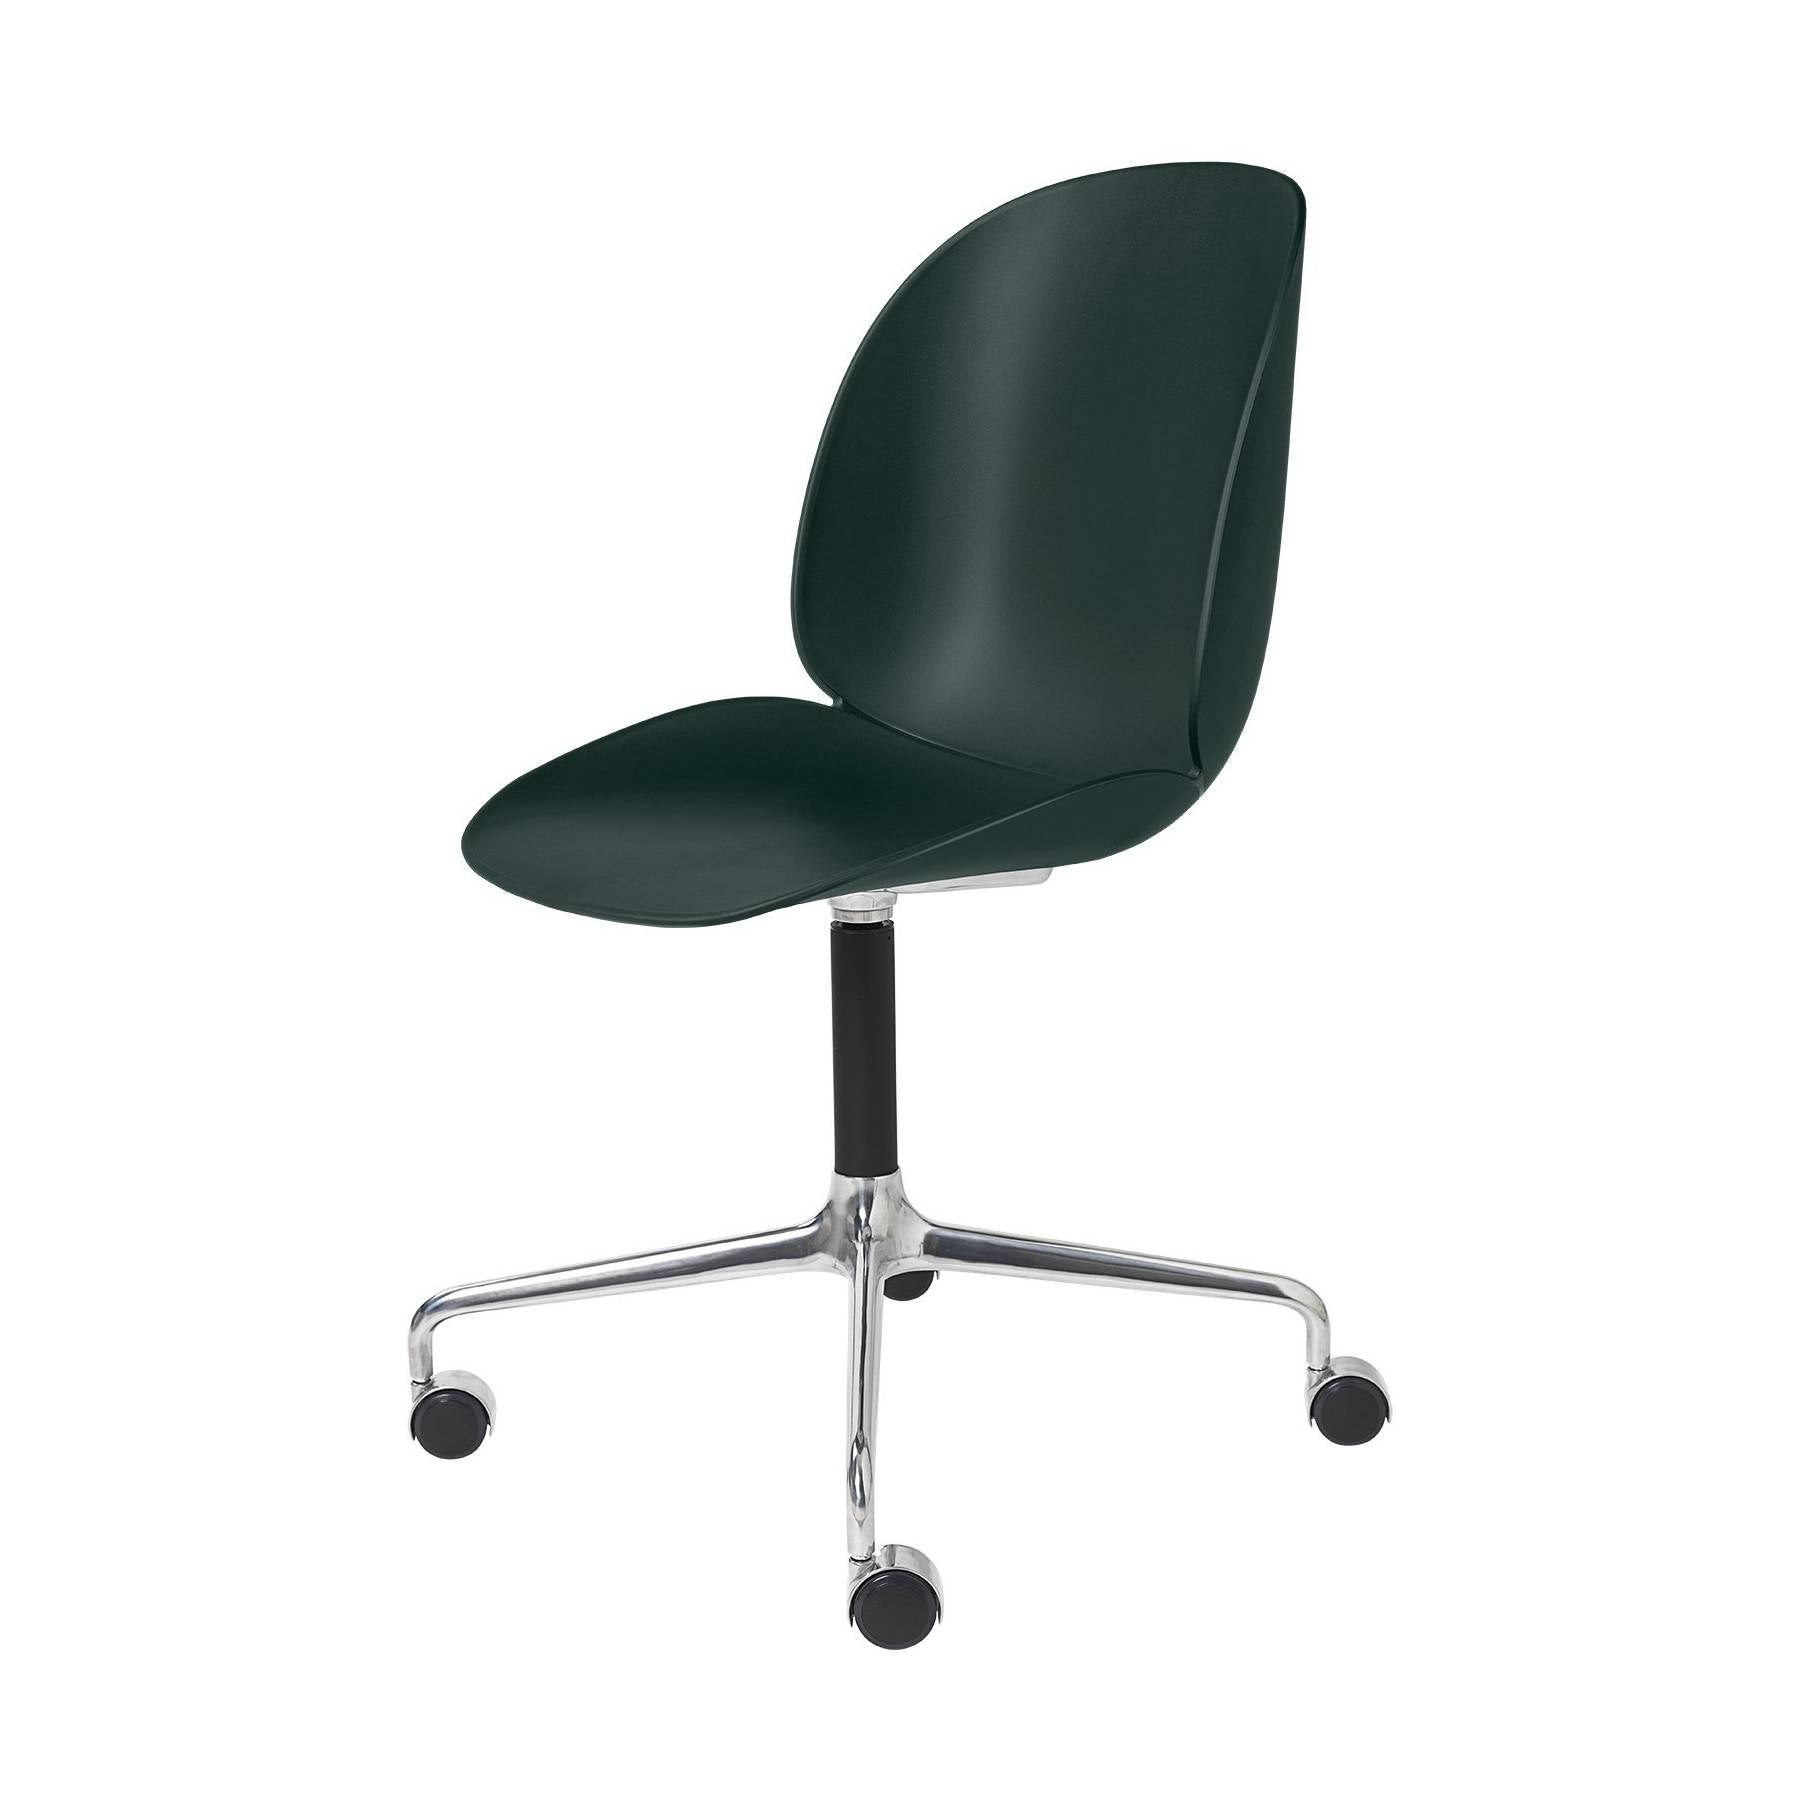 Beetle Meeting Chair: 4-Star Swivel Base With Castors: Dark Green + Polished Aluminum + Black Matte Base